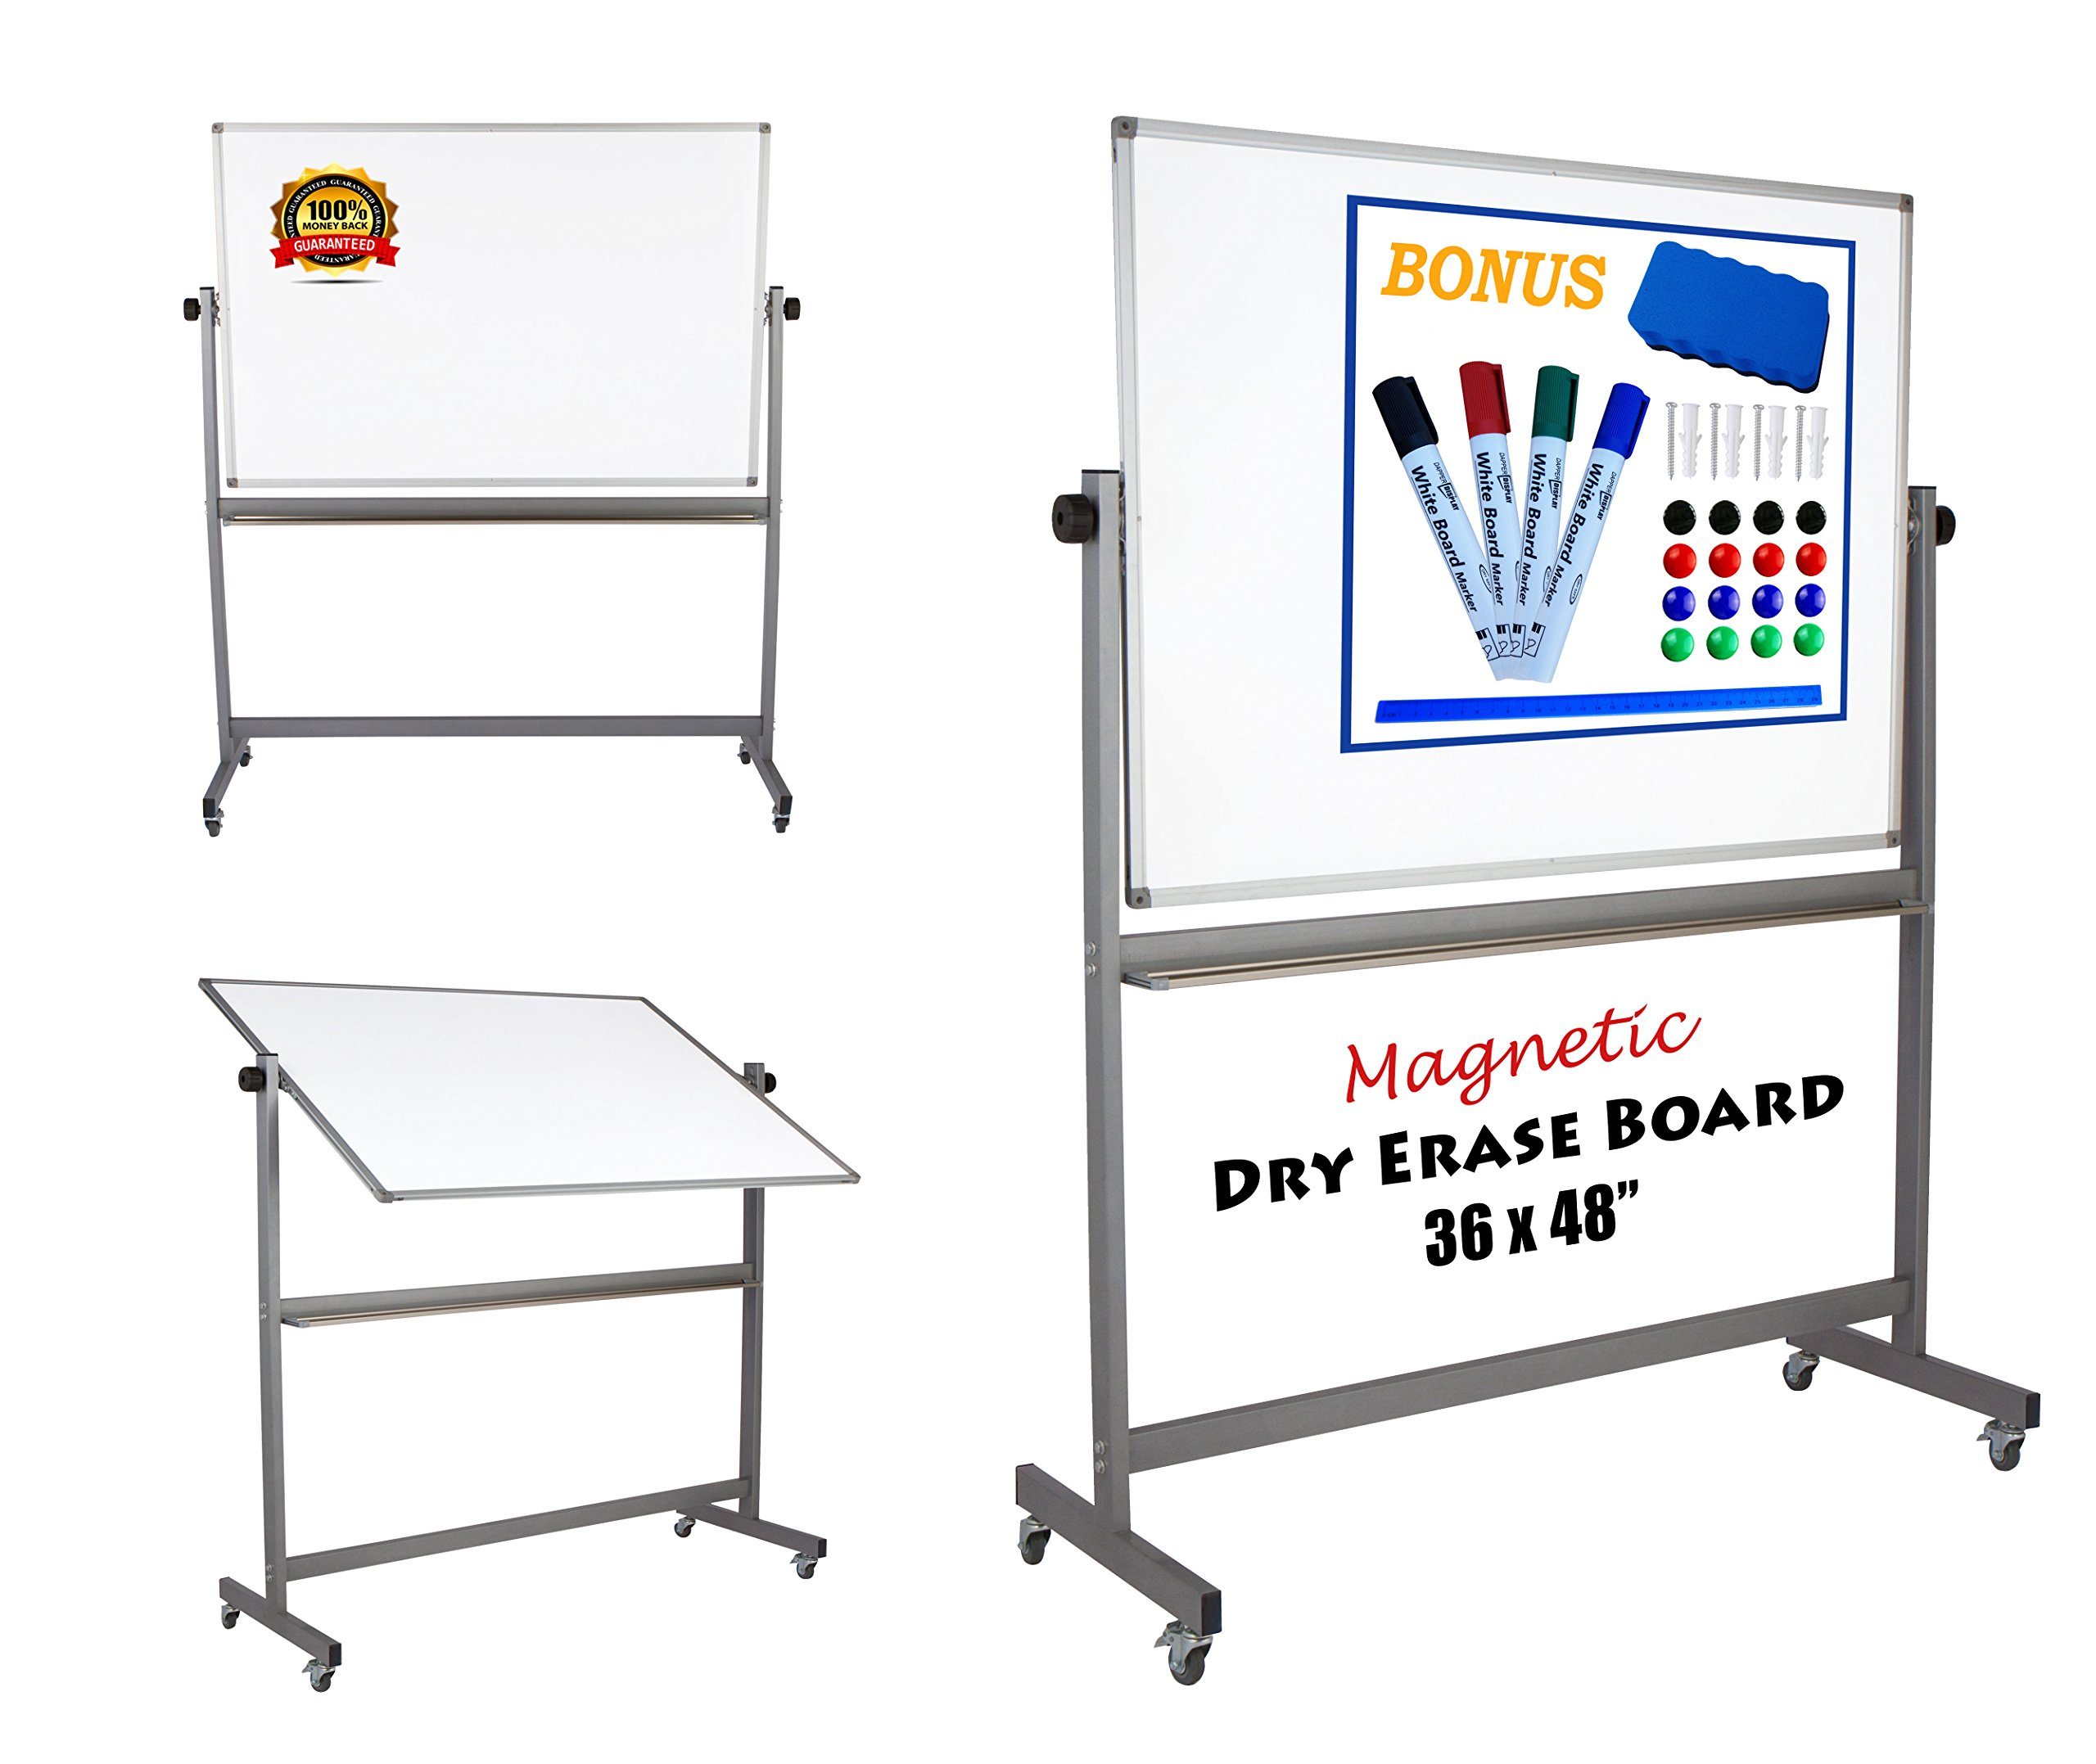 "Magnetic Mobile Whiteboard Large On Stand Double Sided Flip Over Dry Erase Reversible Portable Home Office Classroom Board 36 x 48"" Inch with 4 Markers 12 Magnets Eraser and Ruler Easel Aluminum Frame"